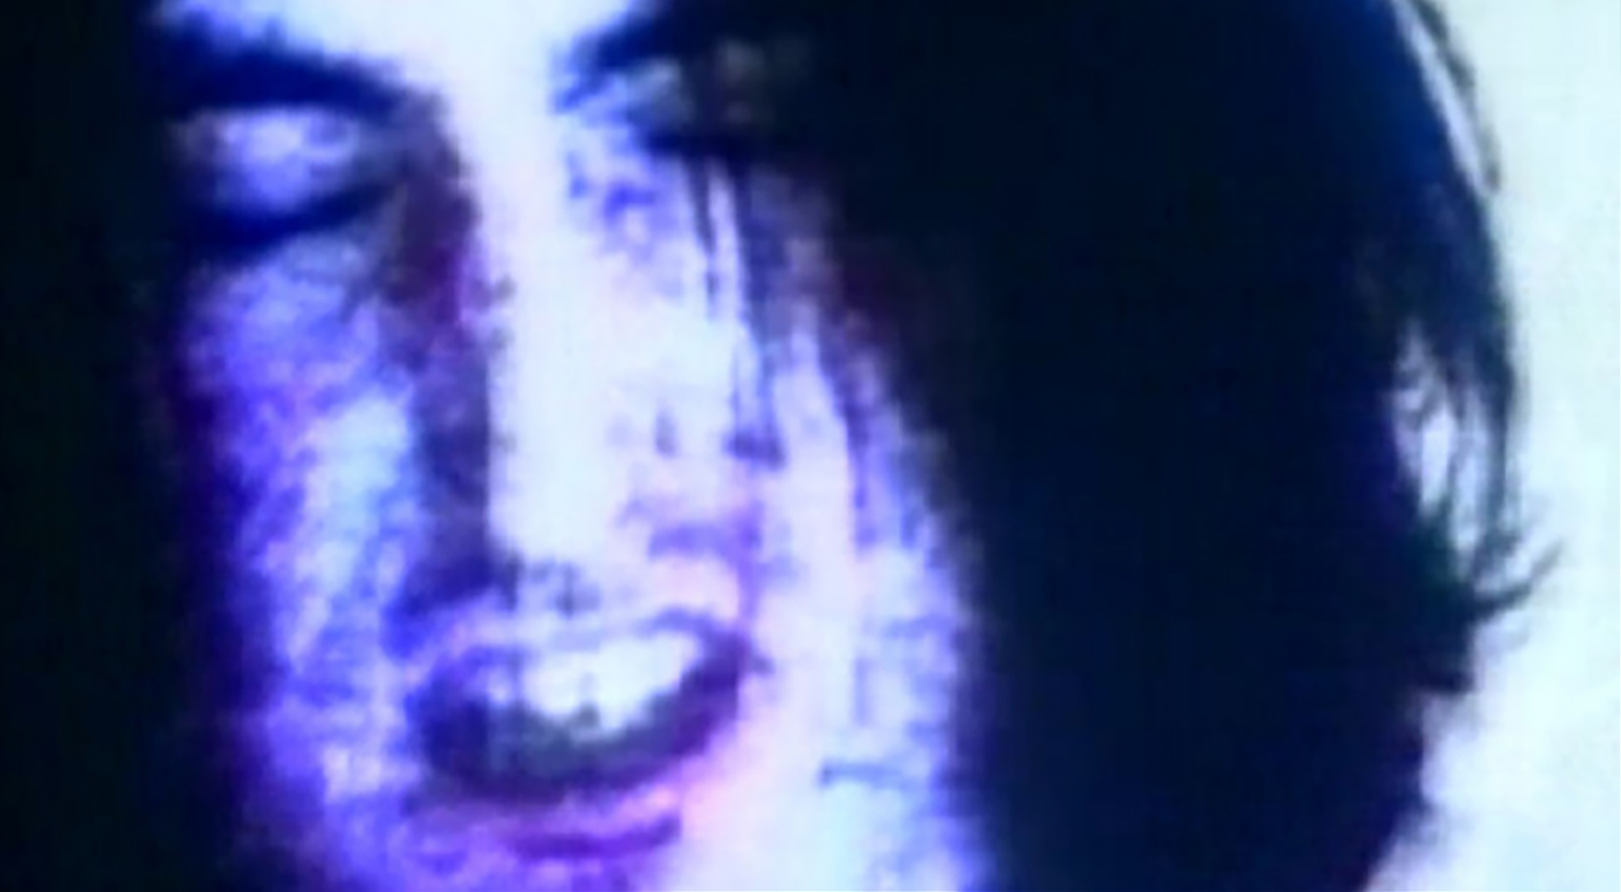 Nine Inch Nails Broken Movie Story Behind Infamous Viral Vhs Sweater Nin Snuff Film Revolver